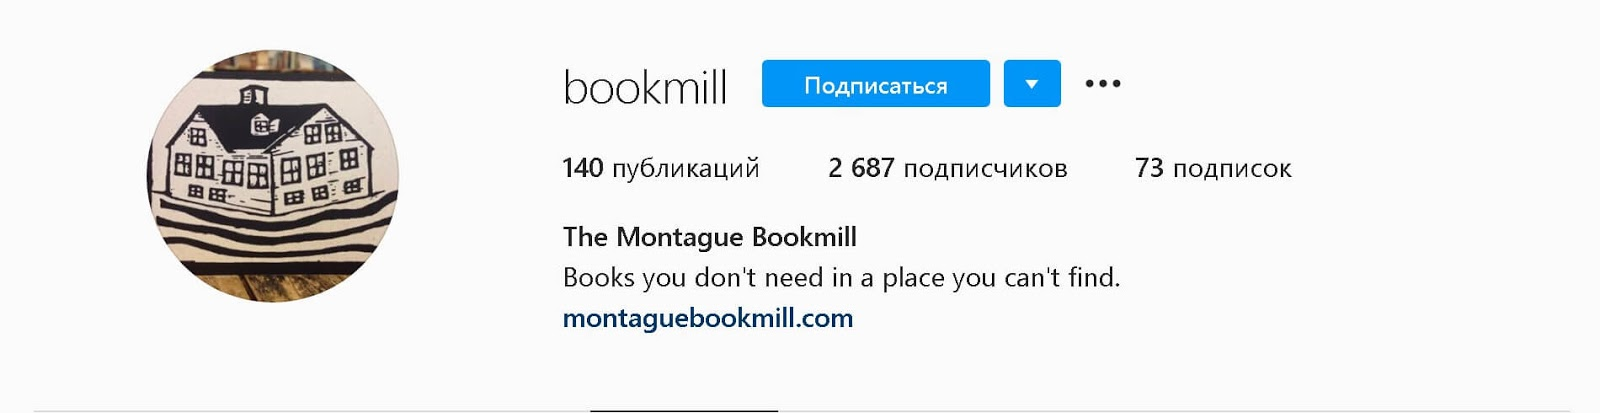 instagram-bios-the-montague-bookmill